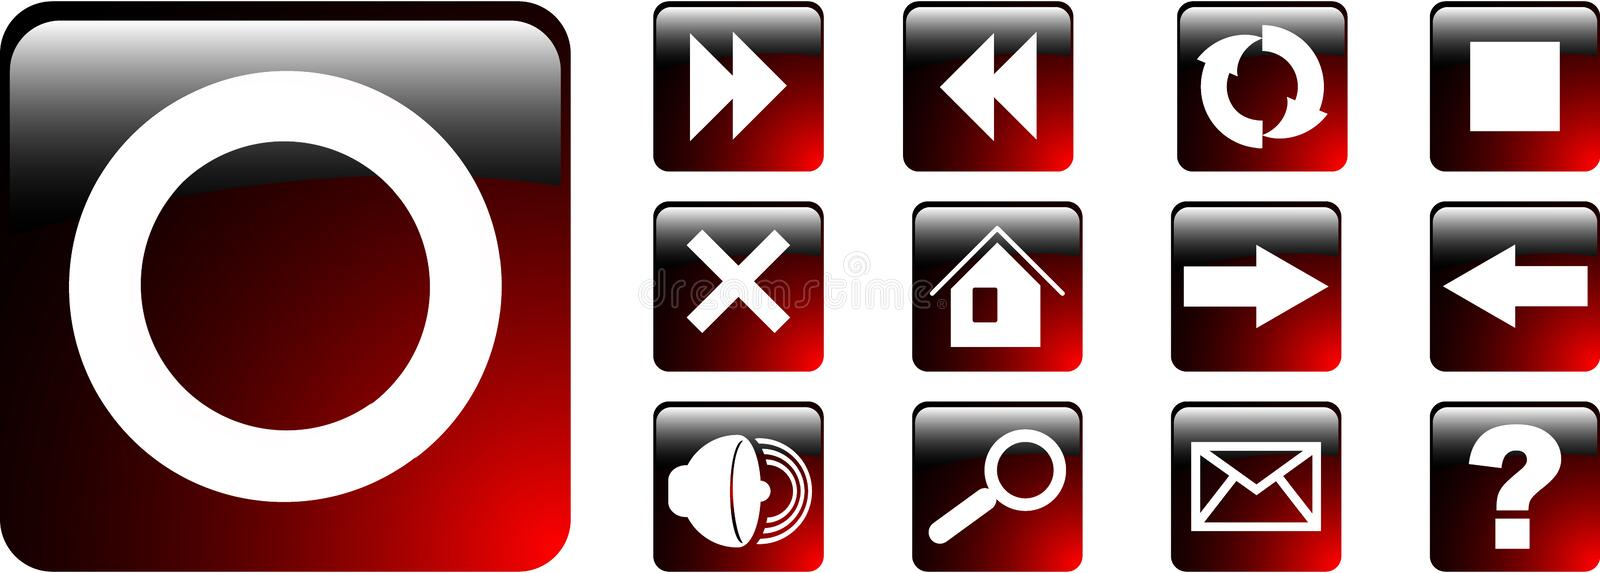 Web icon. The set red web icon vector illustration